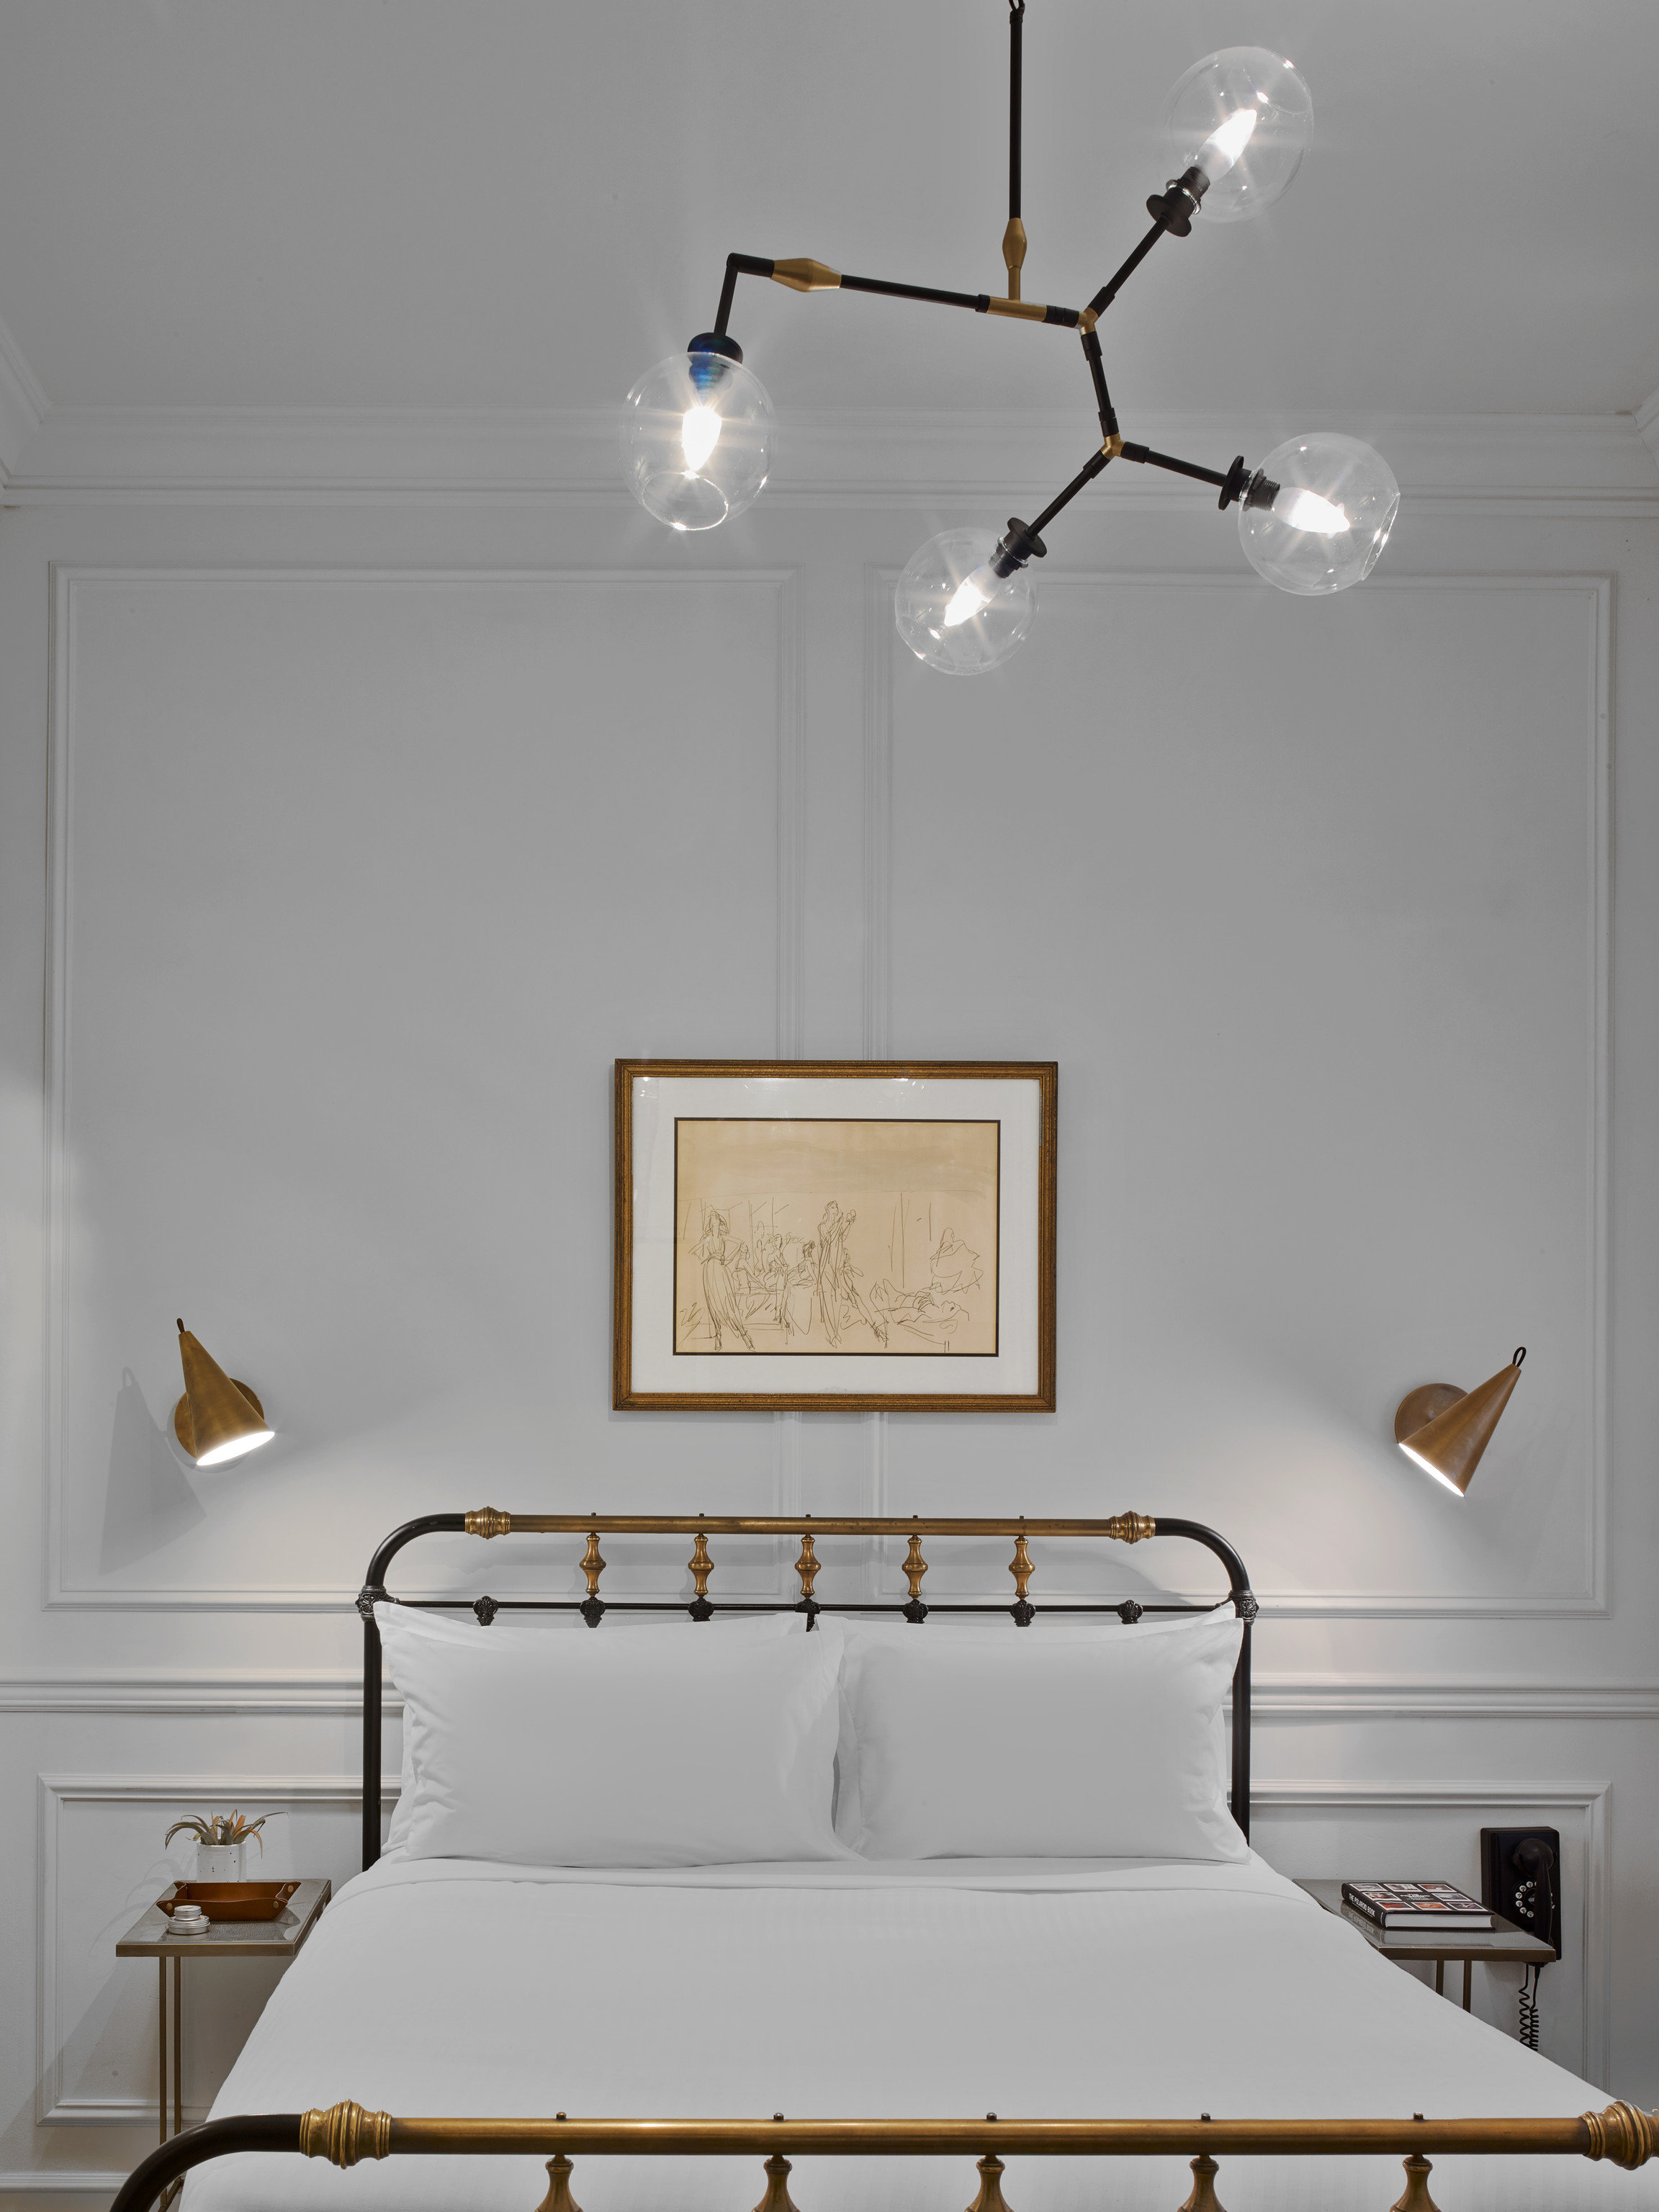 light fixture home bed frame lighting lamp Bedroom white lighting accessory product design chandelier product daylighting lampshade